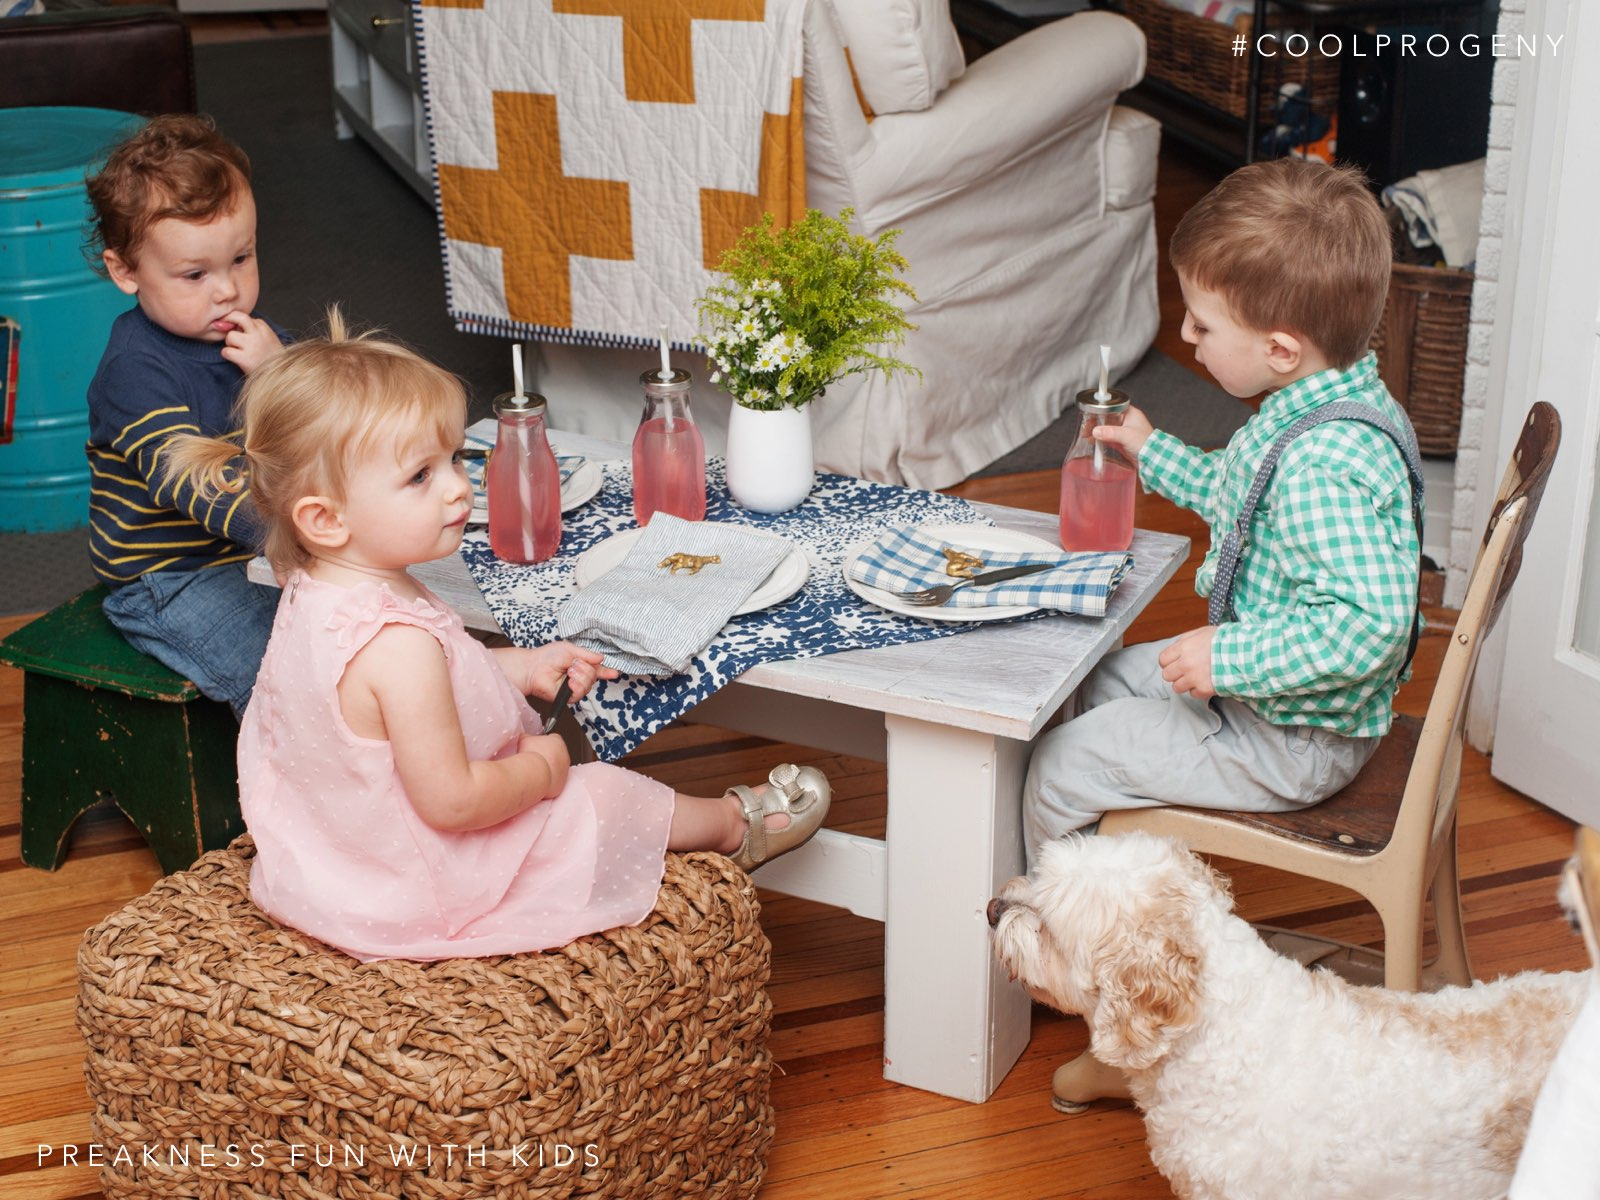 preakness party with kids! - (cool) progeny